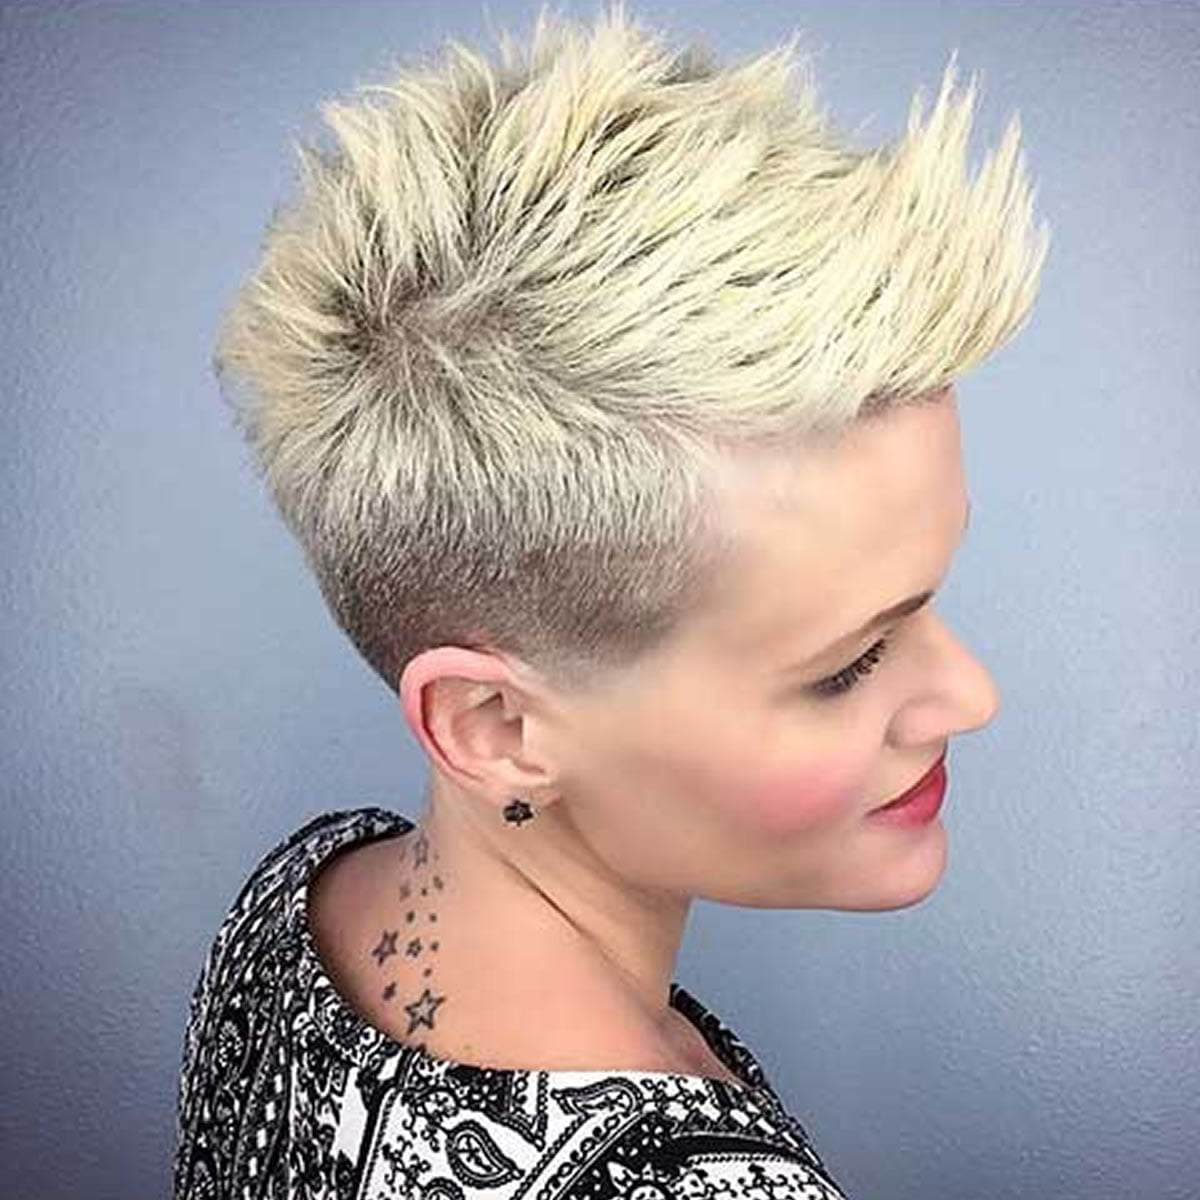 50 The Coolest Short Hairstyles and Hair Colors for Women ... - photo #15